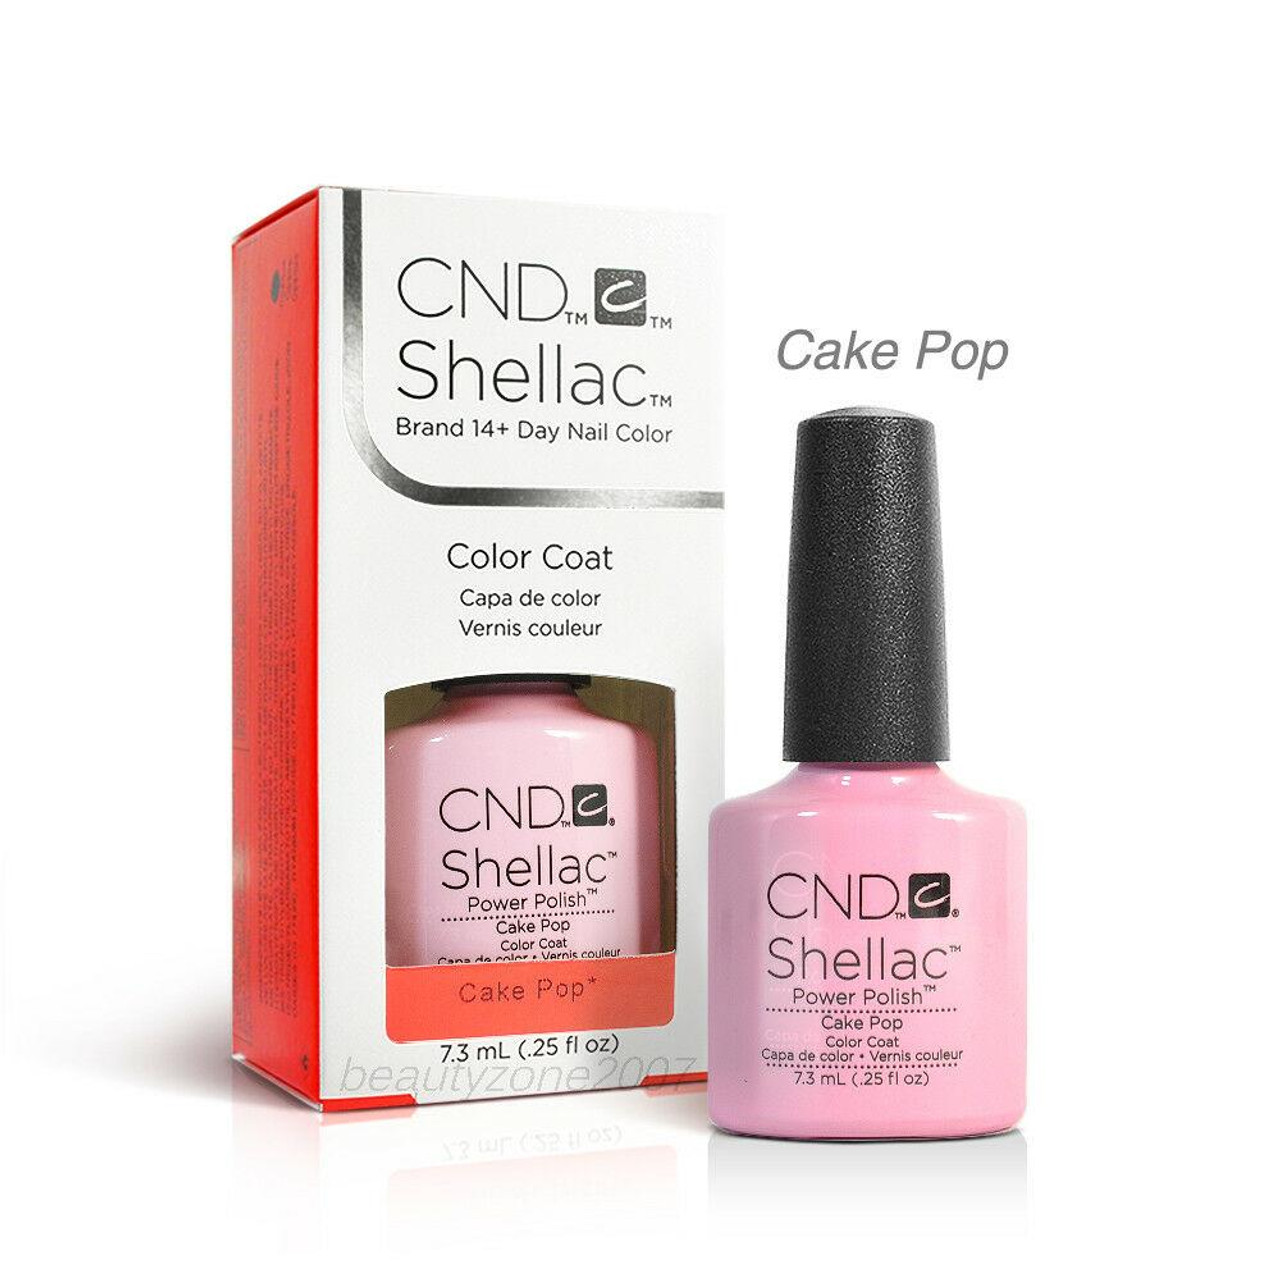 Cnd Shellac Uv Gel Polish Cake Pop 0 25oz